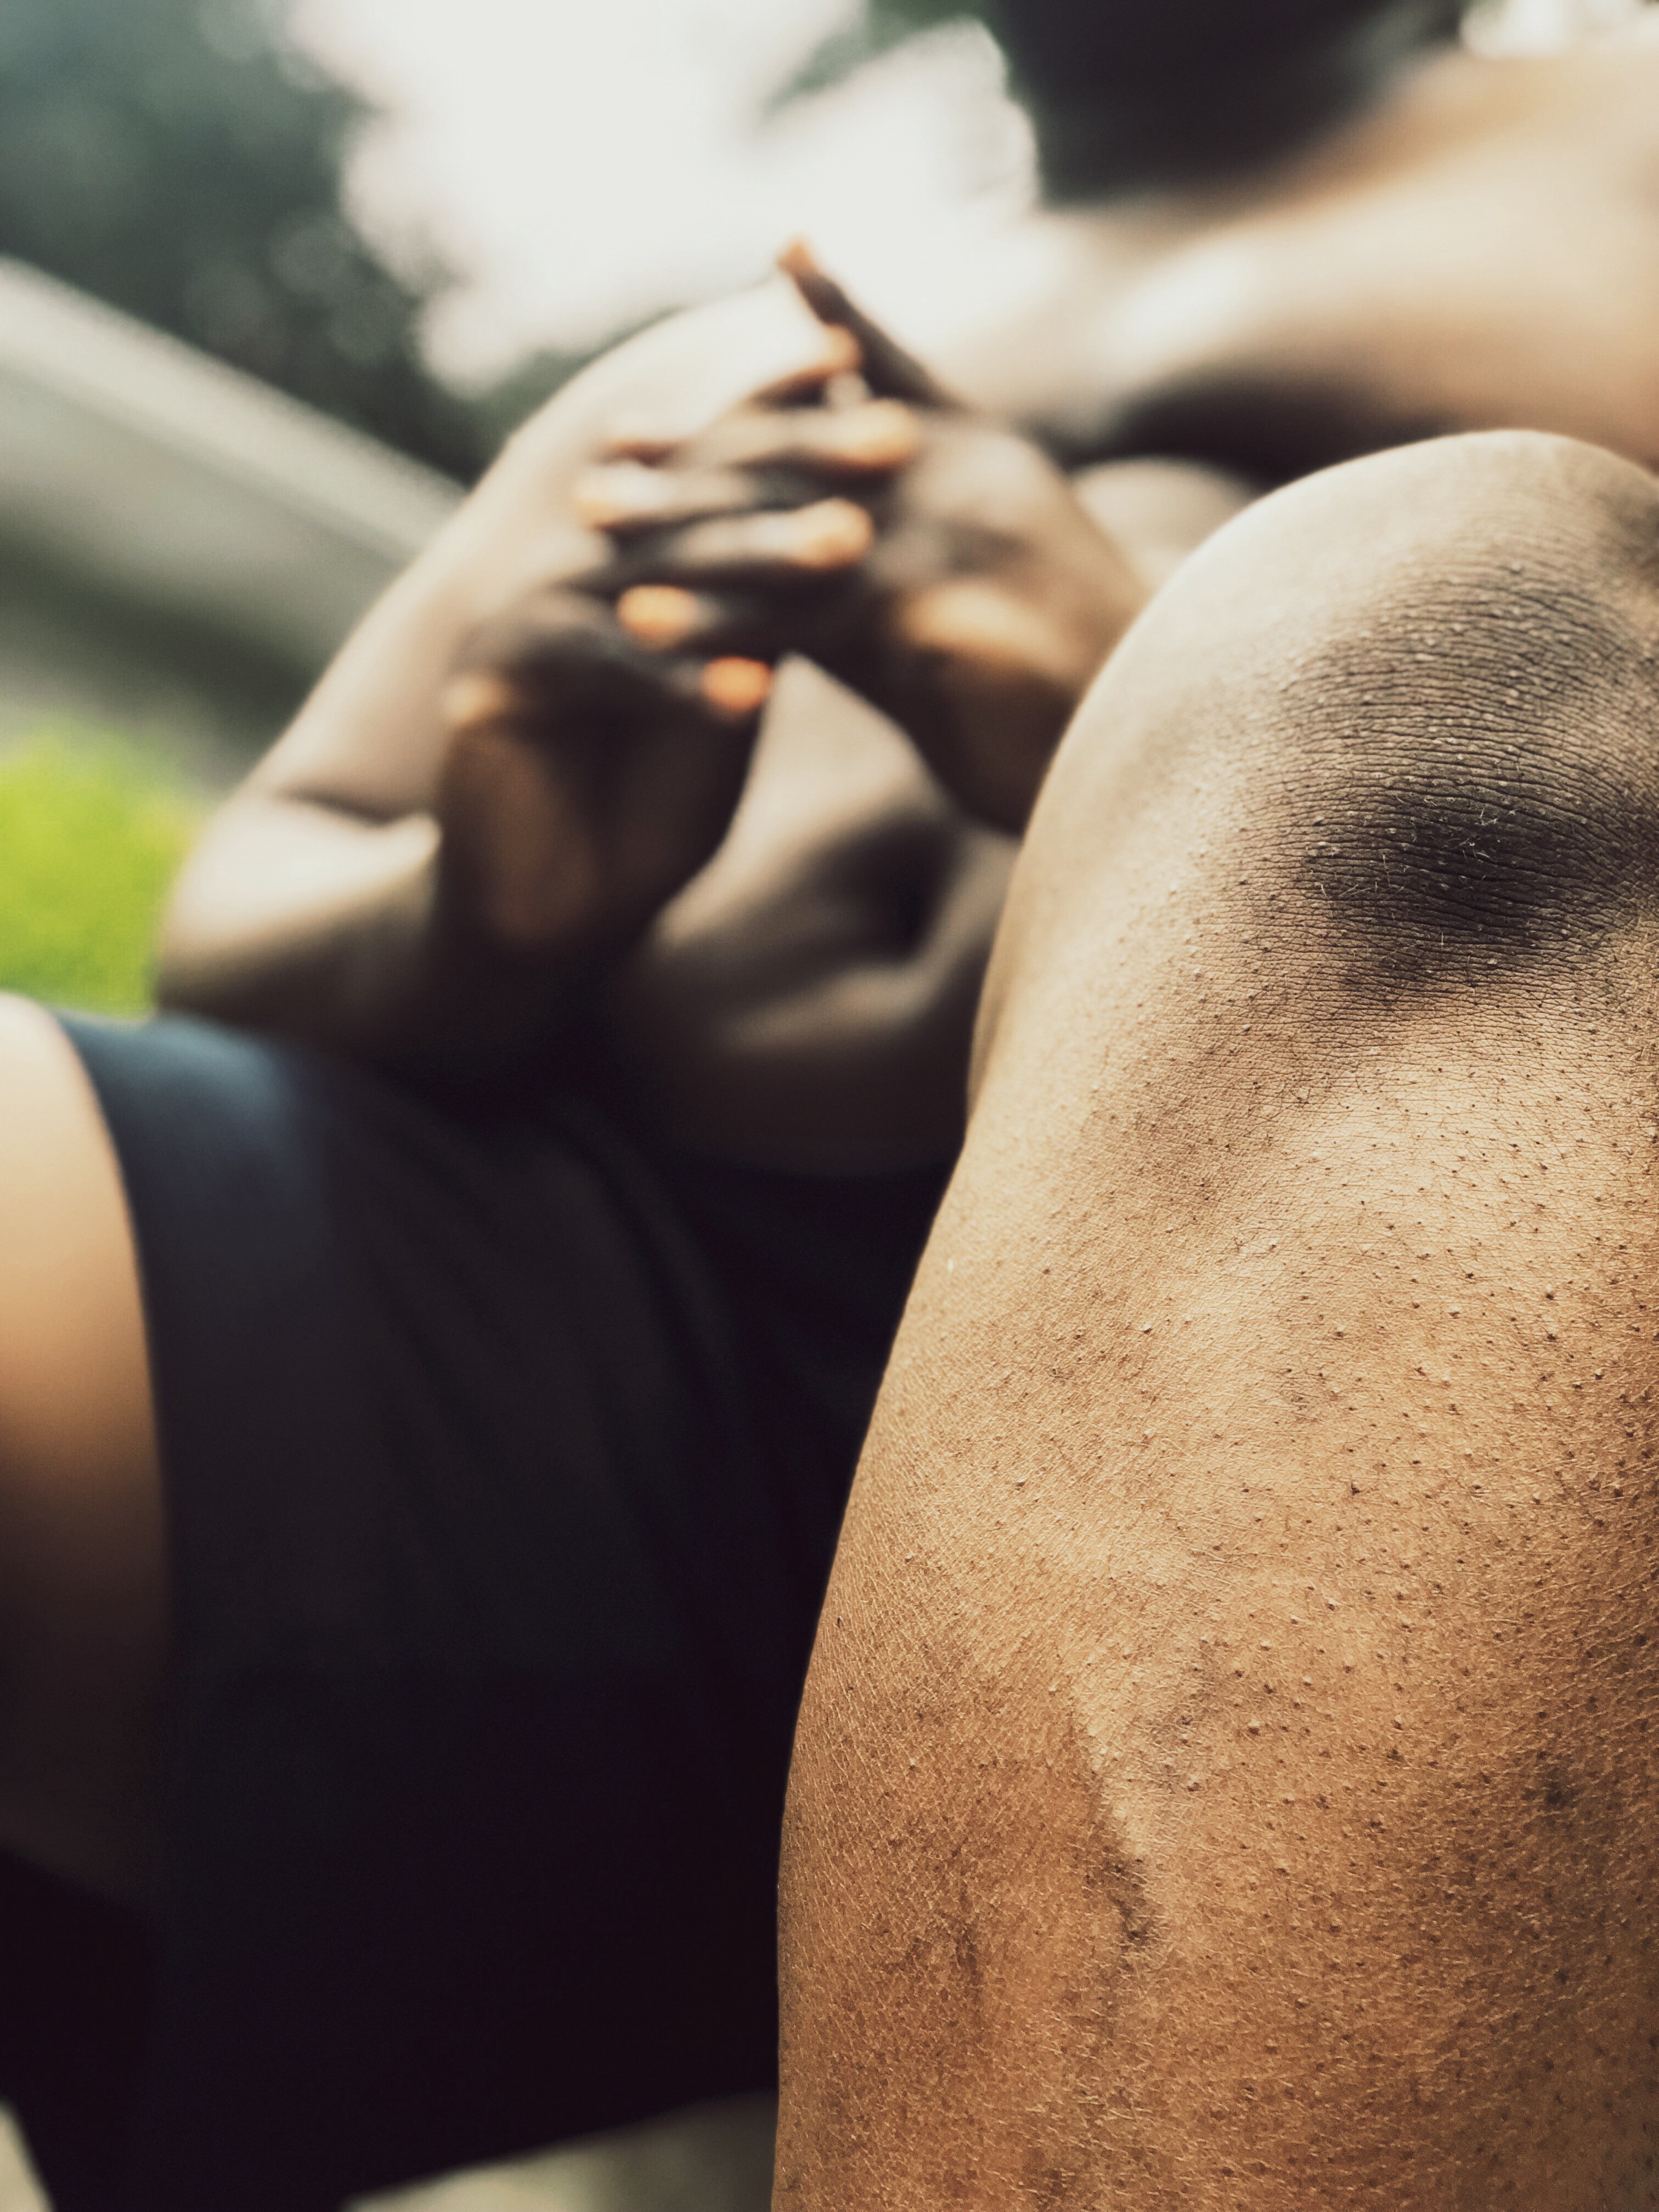 Examining My Maleness, Sexuality, and Black Masculinity